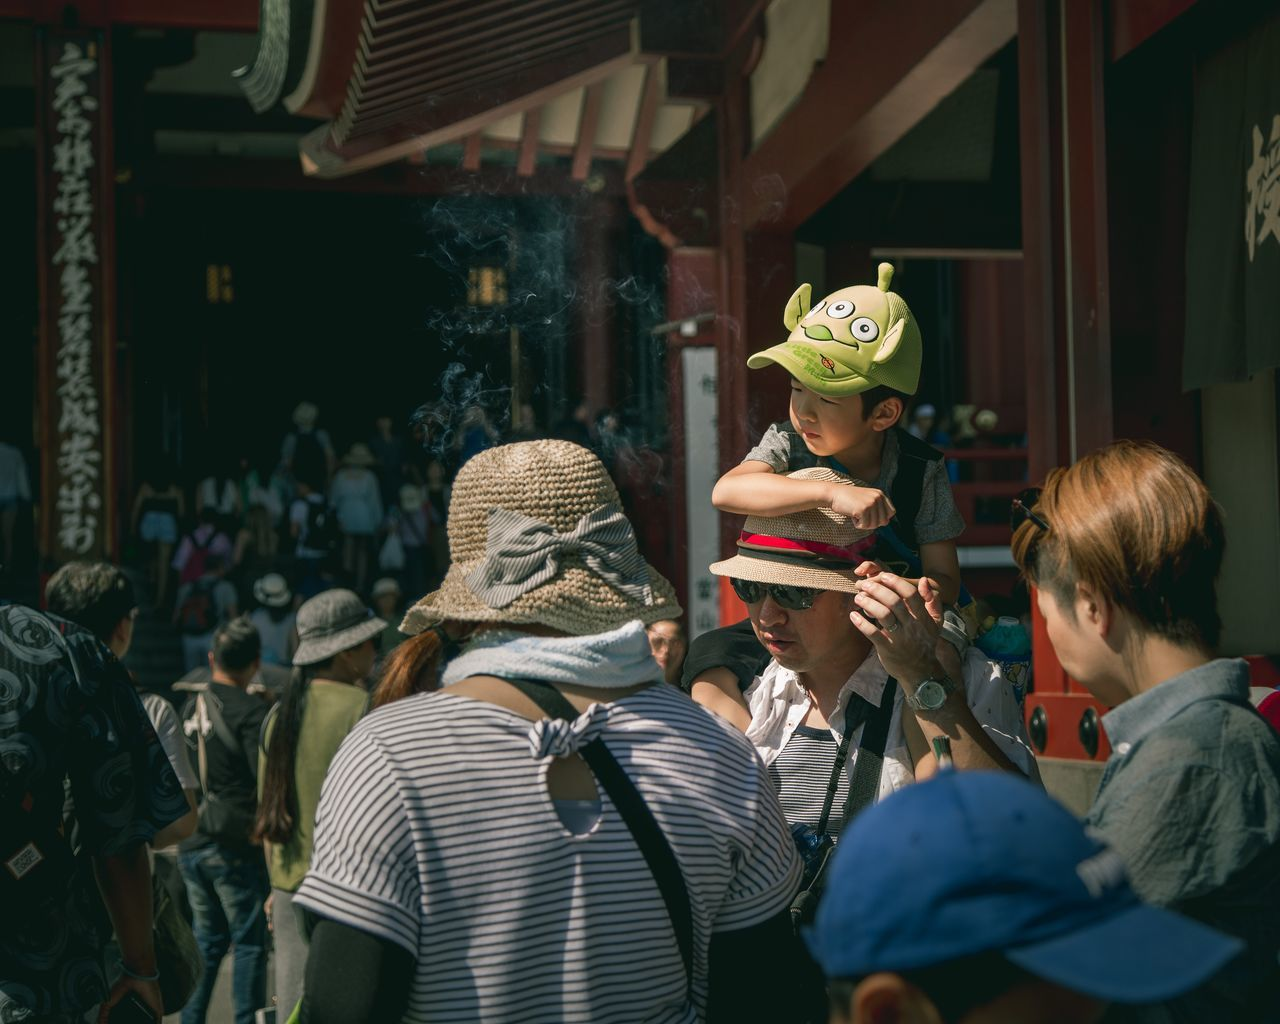 Found a baby Martian in Tokyo Travel Destinations Portraits Of EyeEm Natural Light Portrait Traveller Adventure Travelling Outdoors Street Photography Street Japan Japan Street Photography Tokyo Tokyo Street Photography Asakusa Sensoji Temple Child Japanese Child Japanese Kid